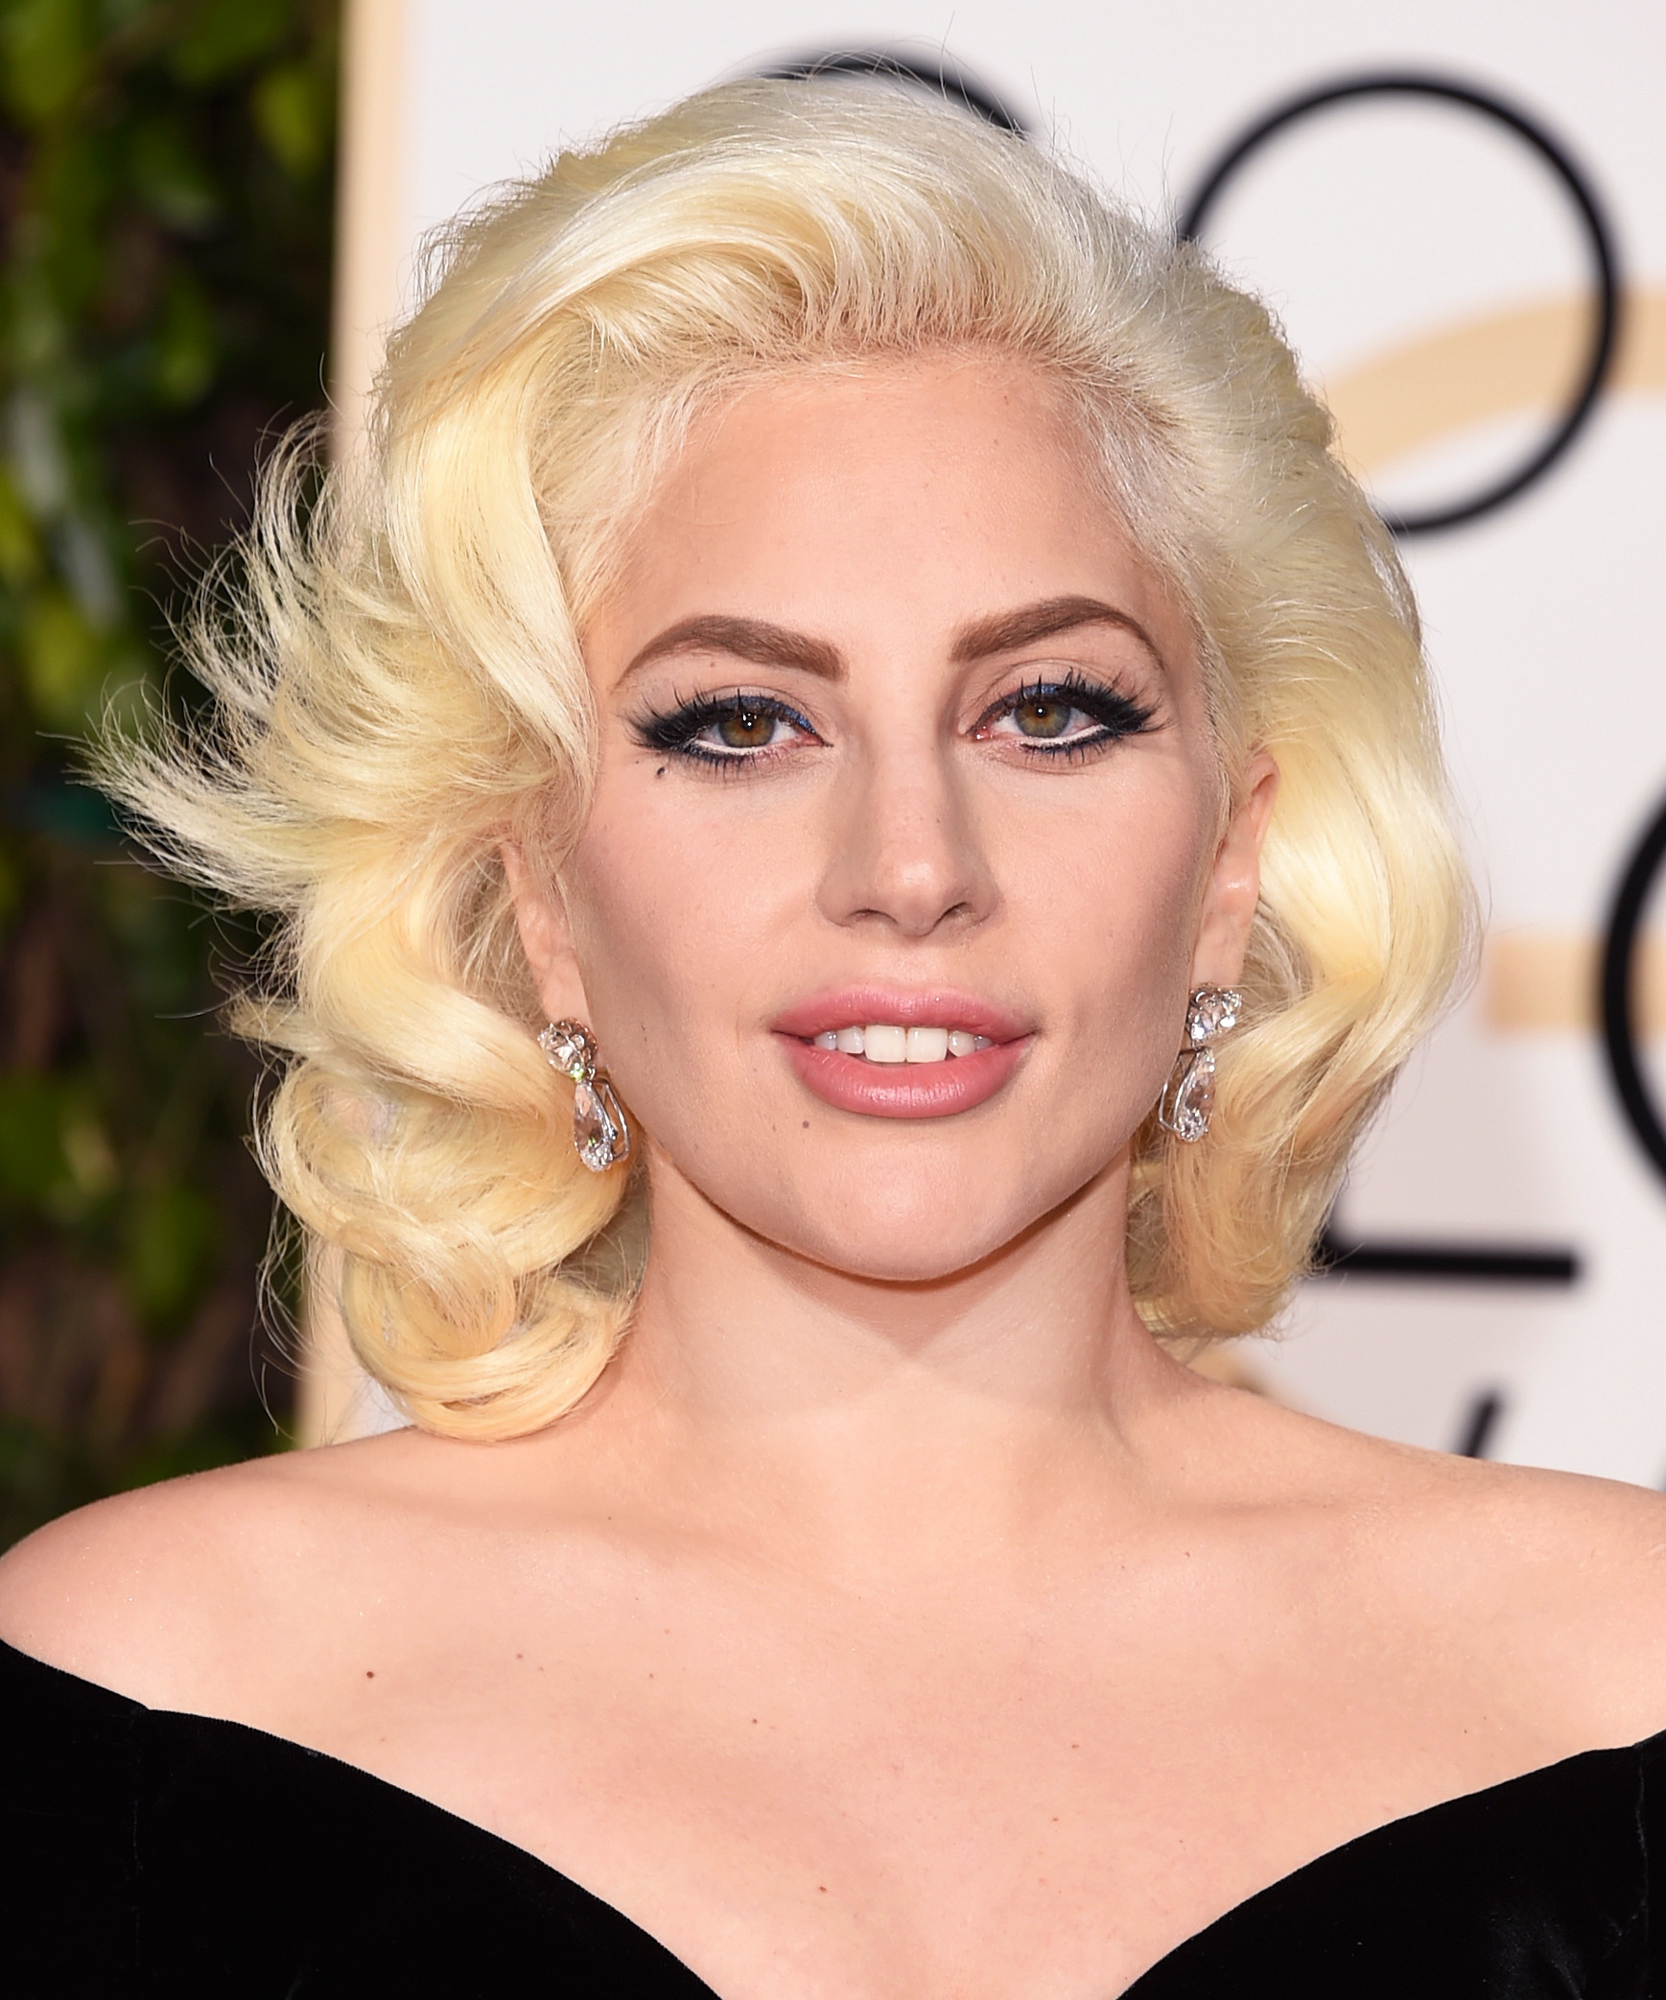 Singer/actress Lady Gaga attends the 73rd Annual Golden Globe Awards held at the Beverly Hilton Hotel on January 10, 2016 in Beverly Hills, California.